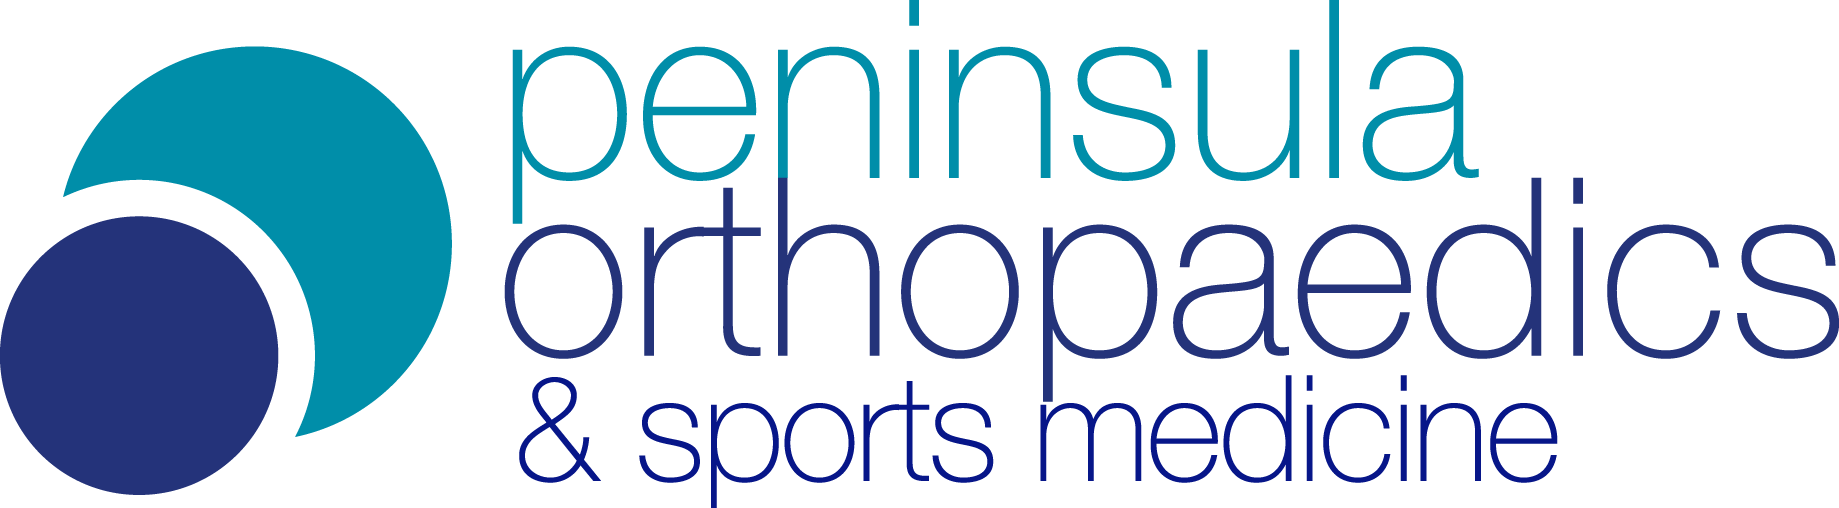 Peninsula Orthopaedics & Sports Medicine